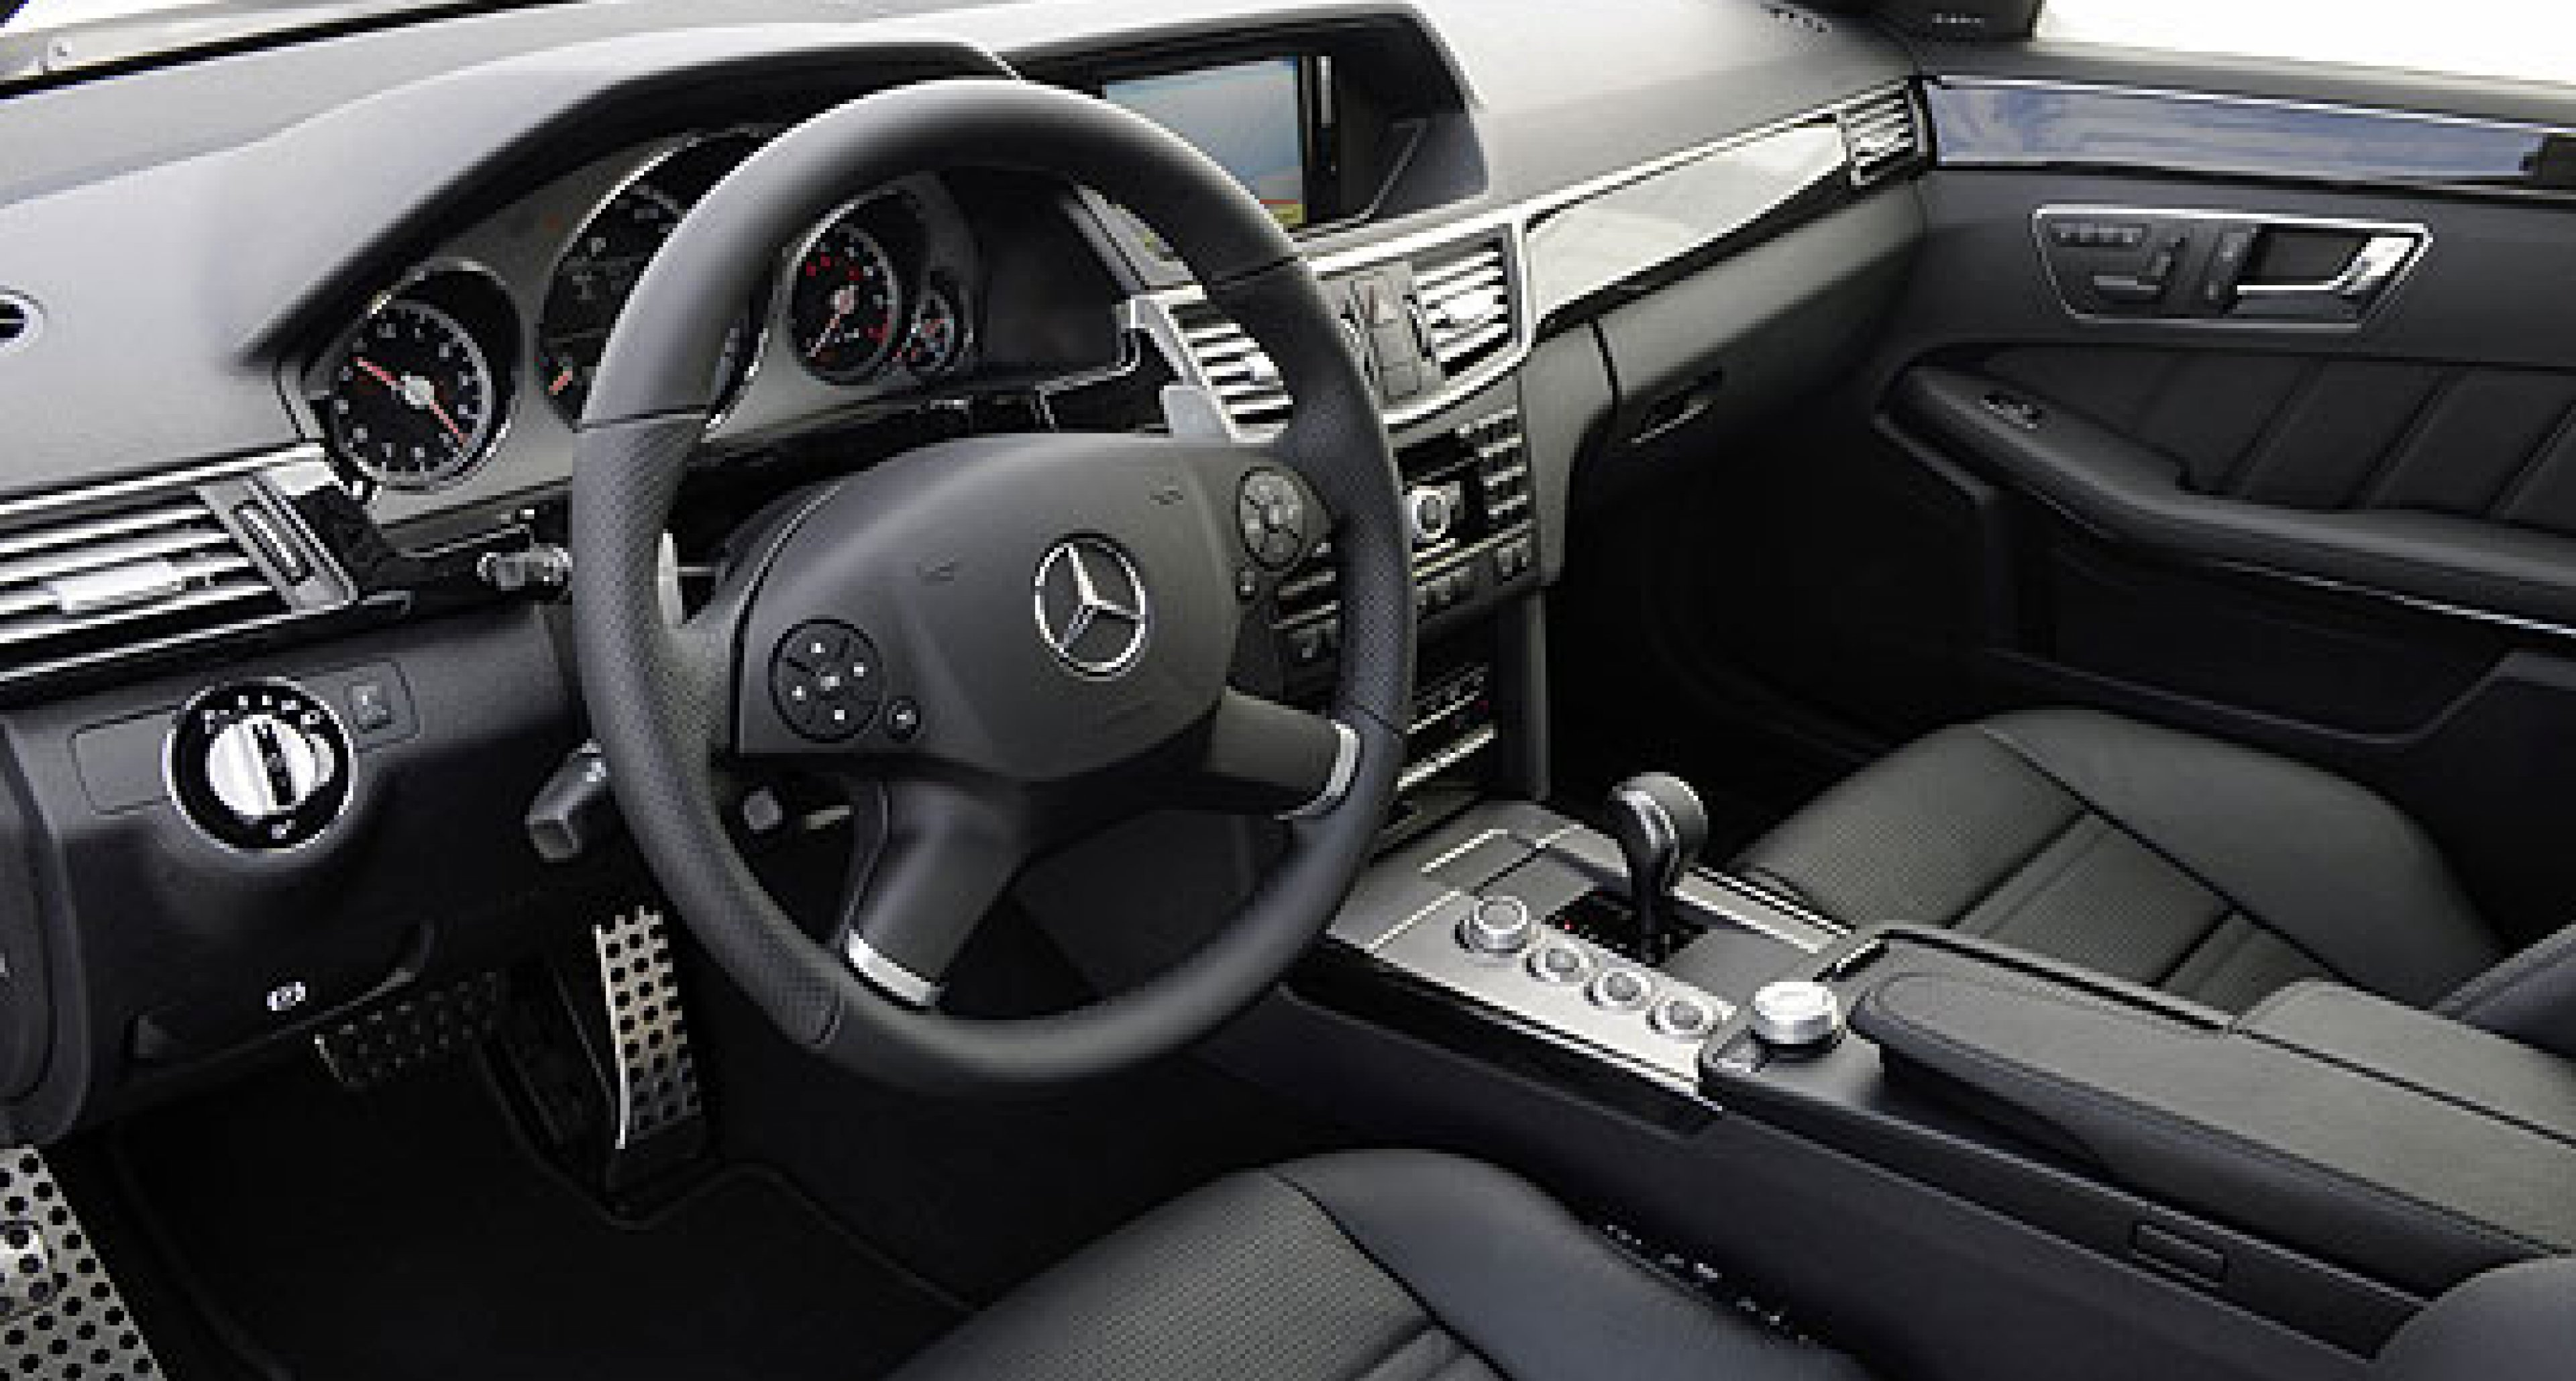 Two New E-Class Performance Cars from AMG and Brabus